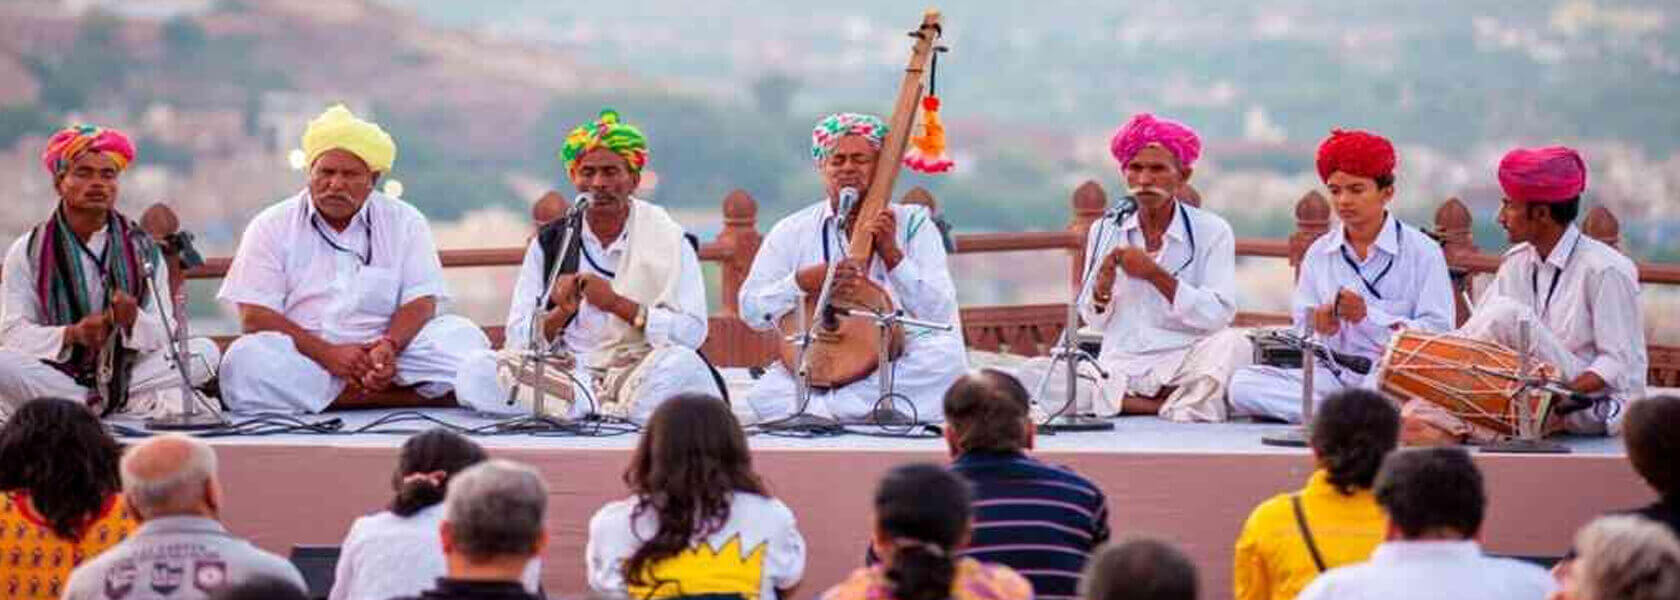 Rajasthan Folk Musician Communities